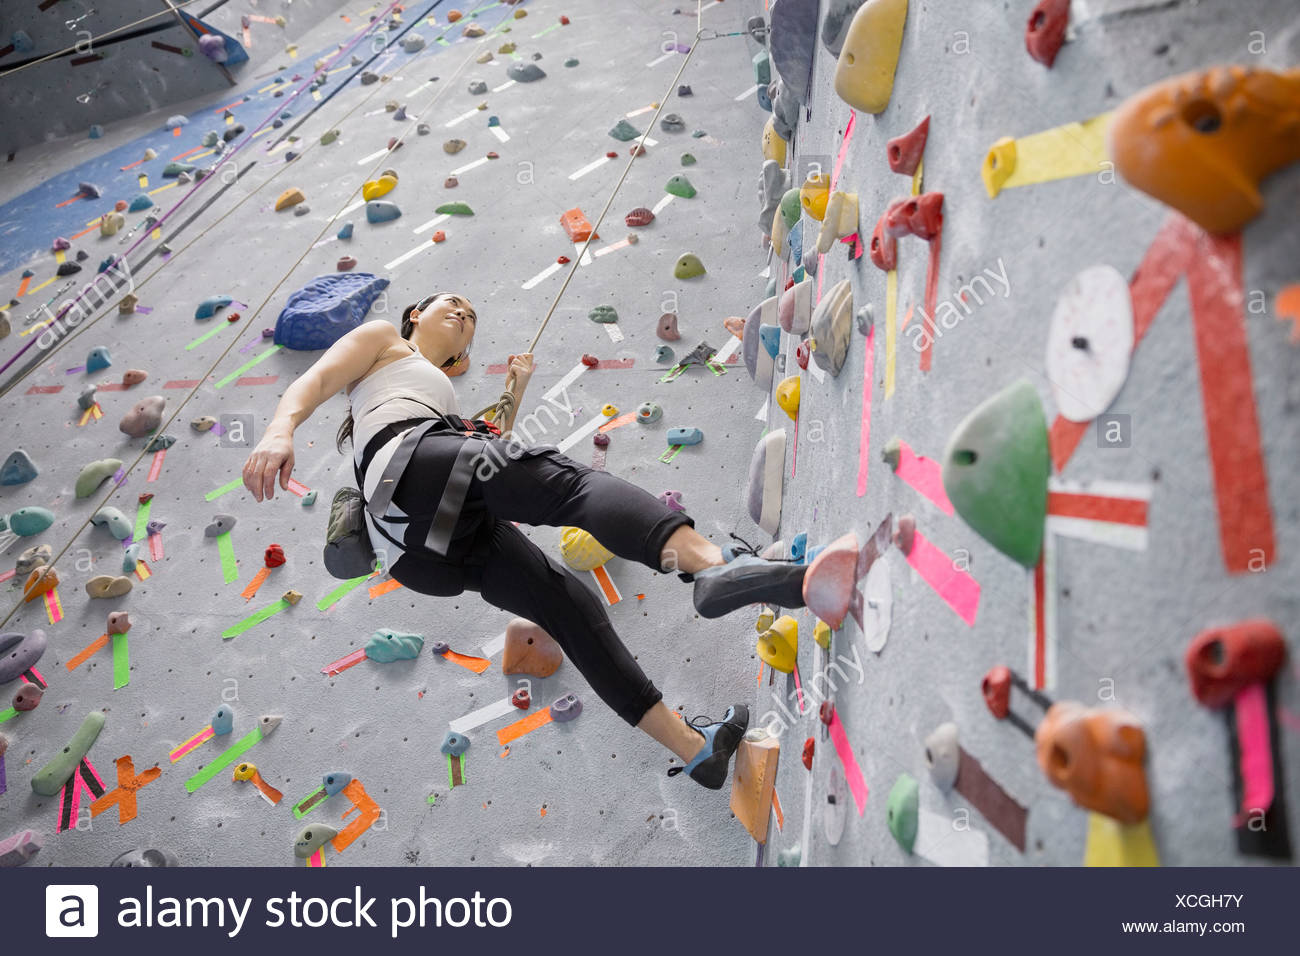 Frau indoor Rock Kletterwand Stockbild